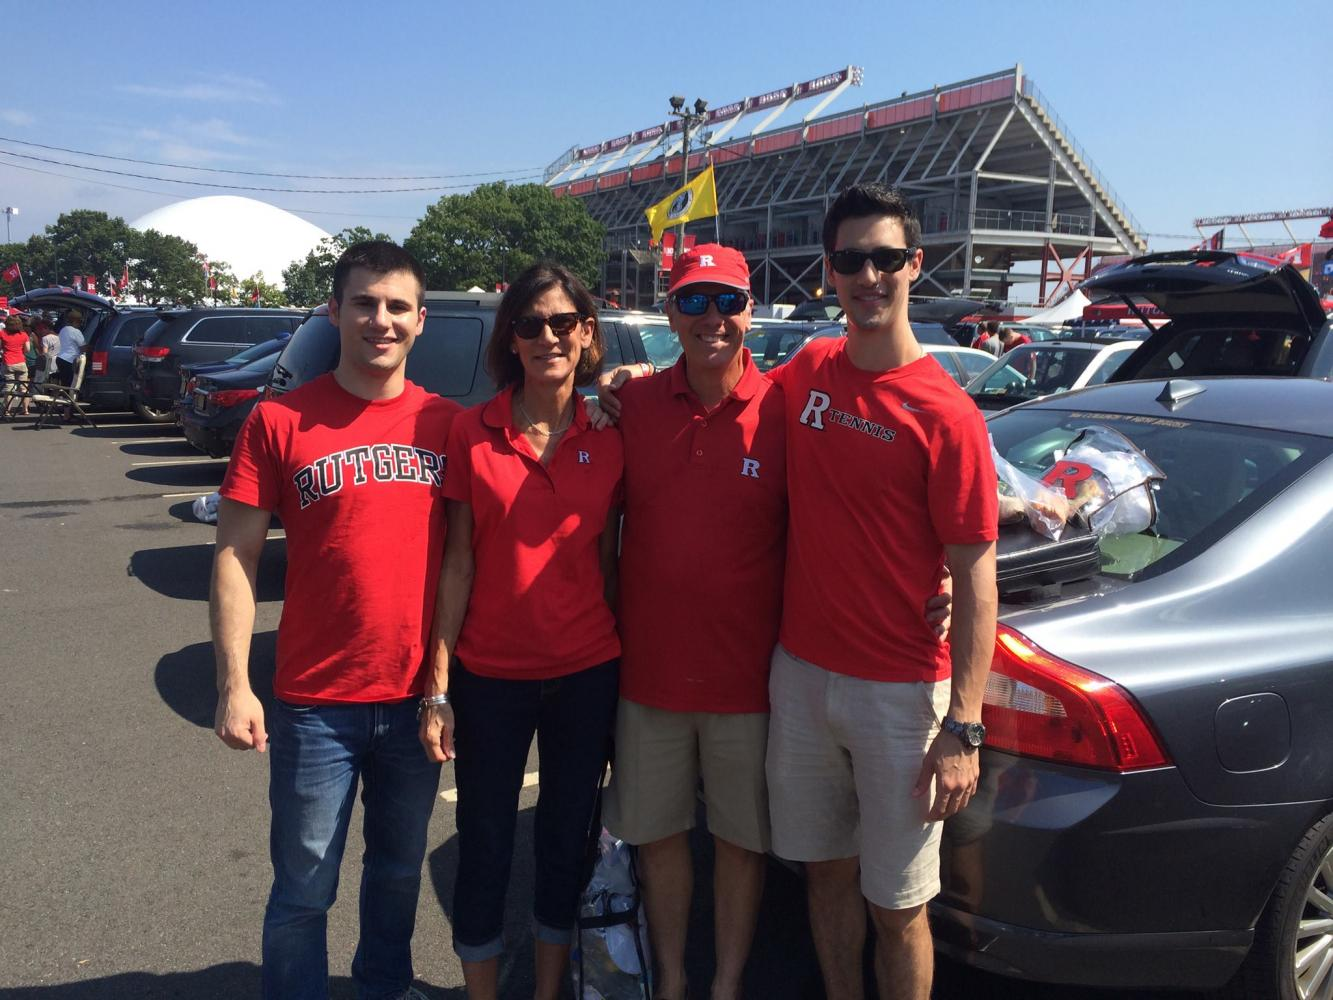 Brett, Judith, Scott, and Scott Sr. pose for a photograph at a Rutgers football game. The photo was taken a few years before Scott's mother passed away from cancer, sparking a journey -- both inner and outer -- that would change his future.